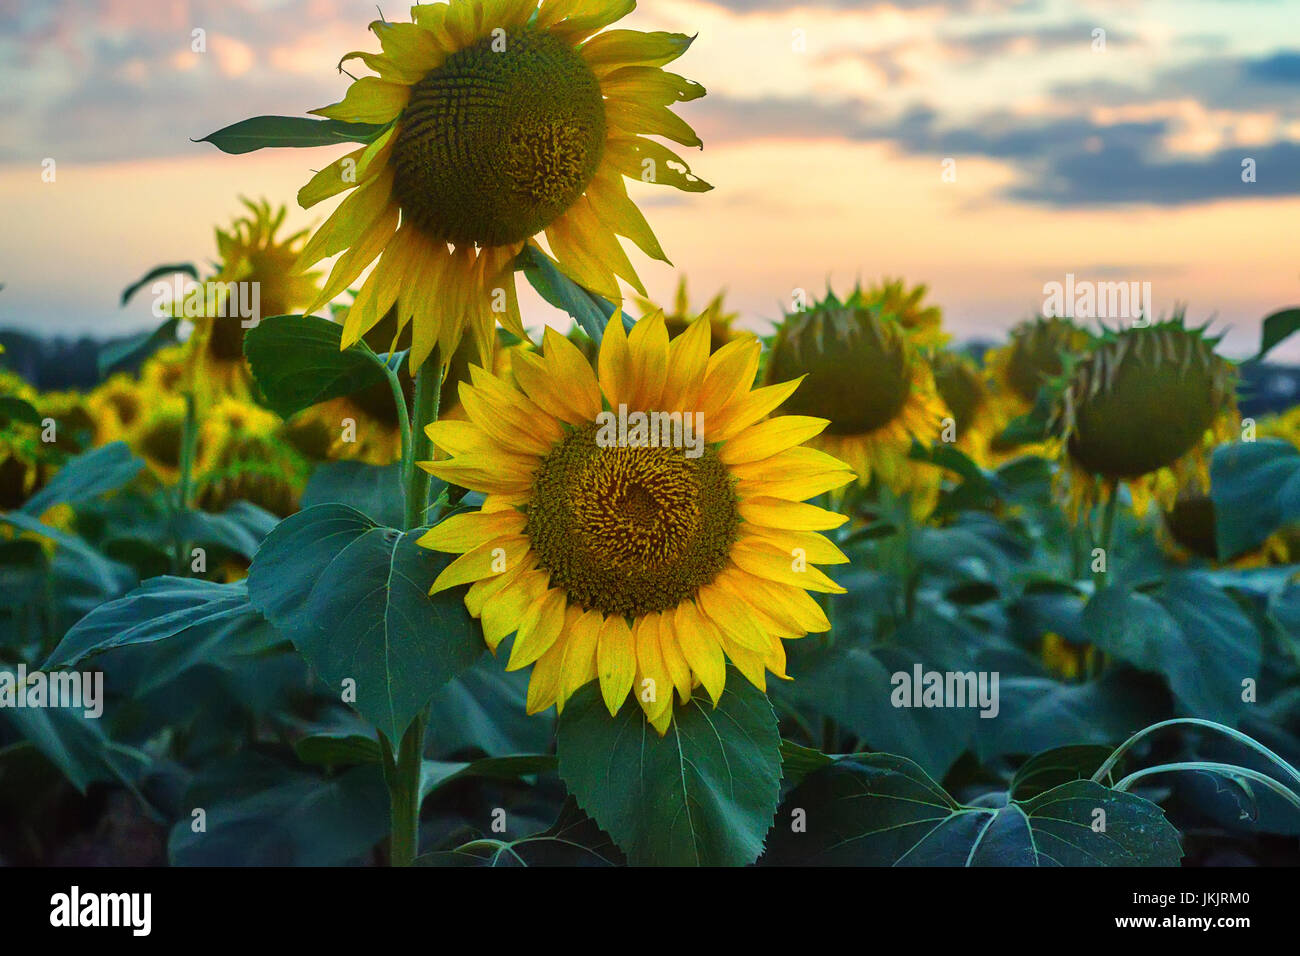 Field of sunflowers during sunset - Stock Image